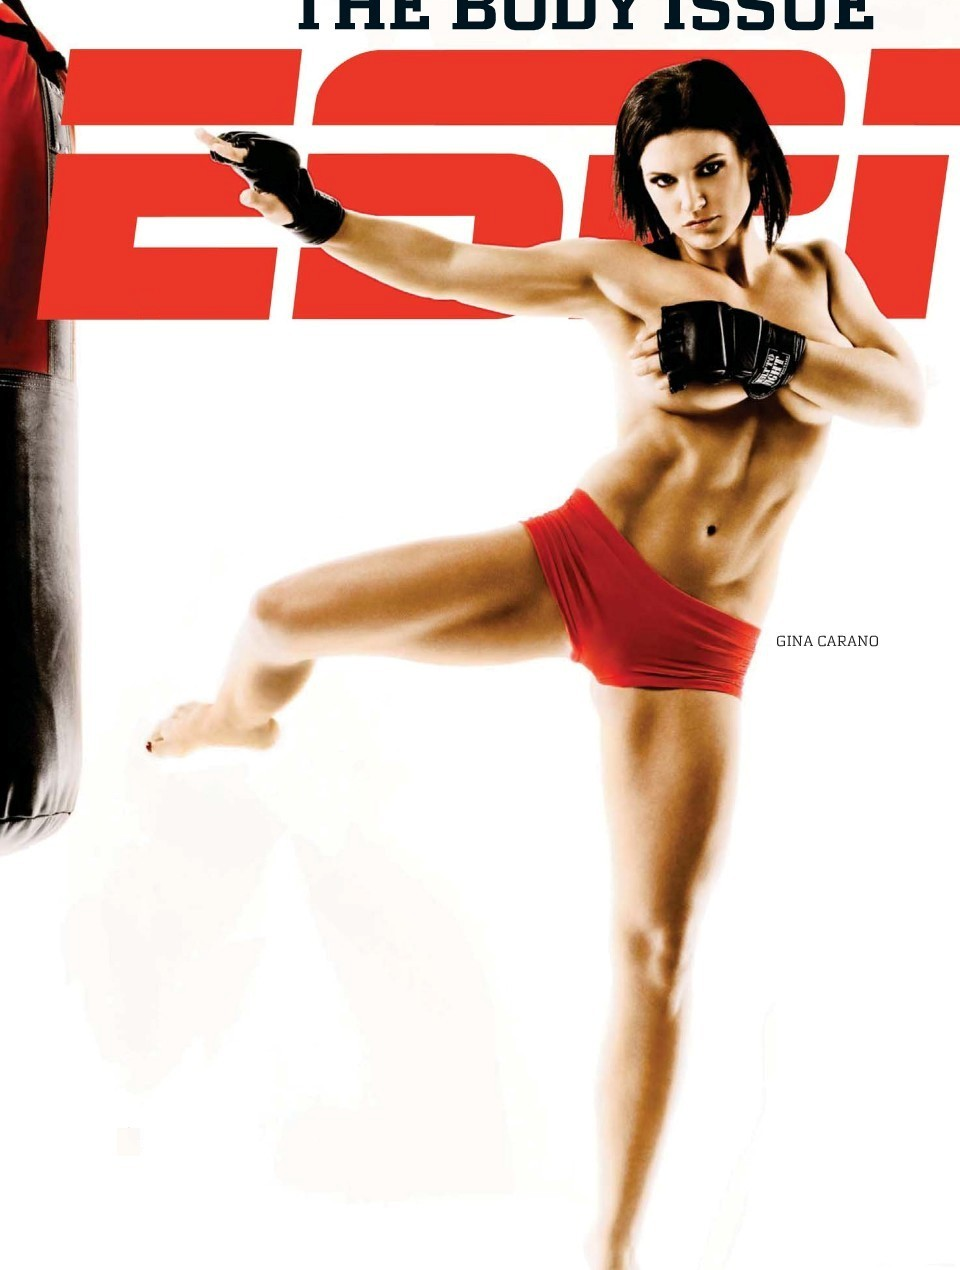 Gina Carano - MMA Fighter